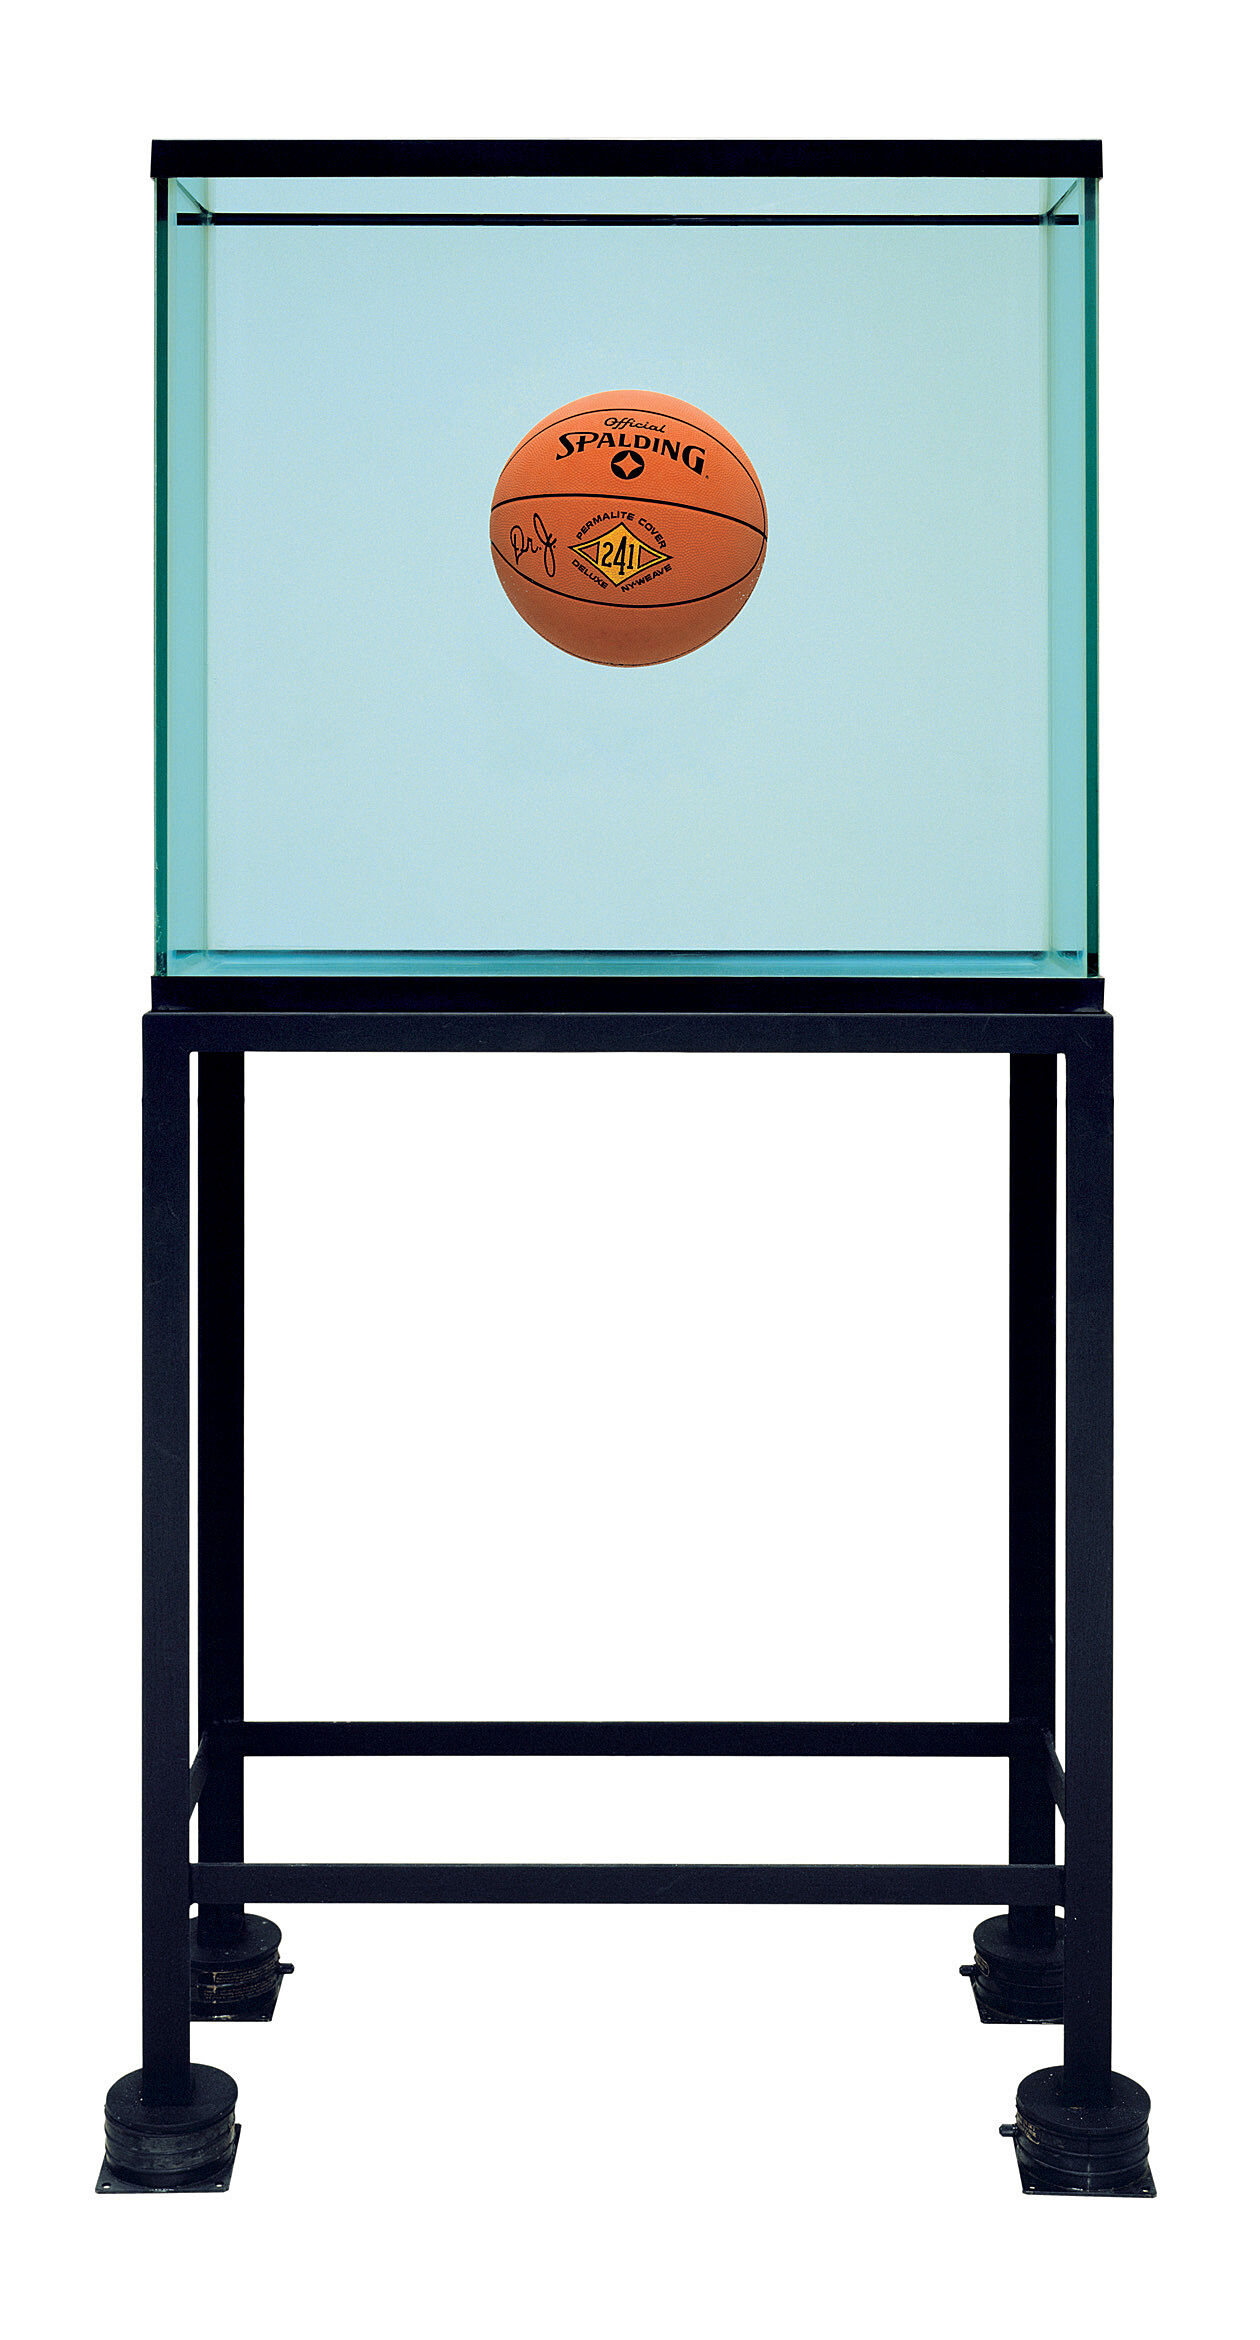 A basketball floating in a glass tank.